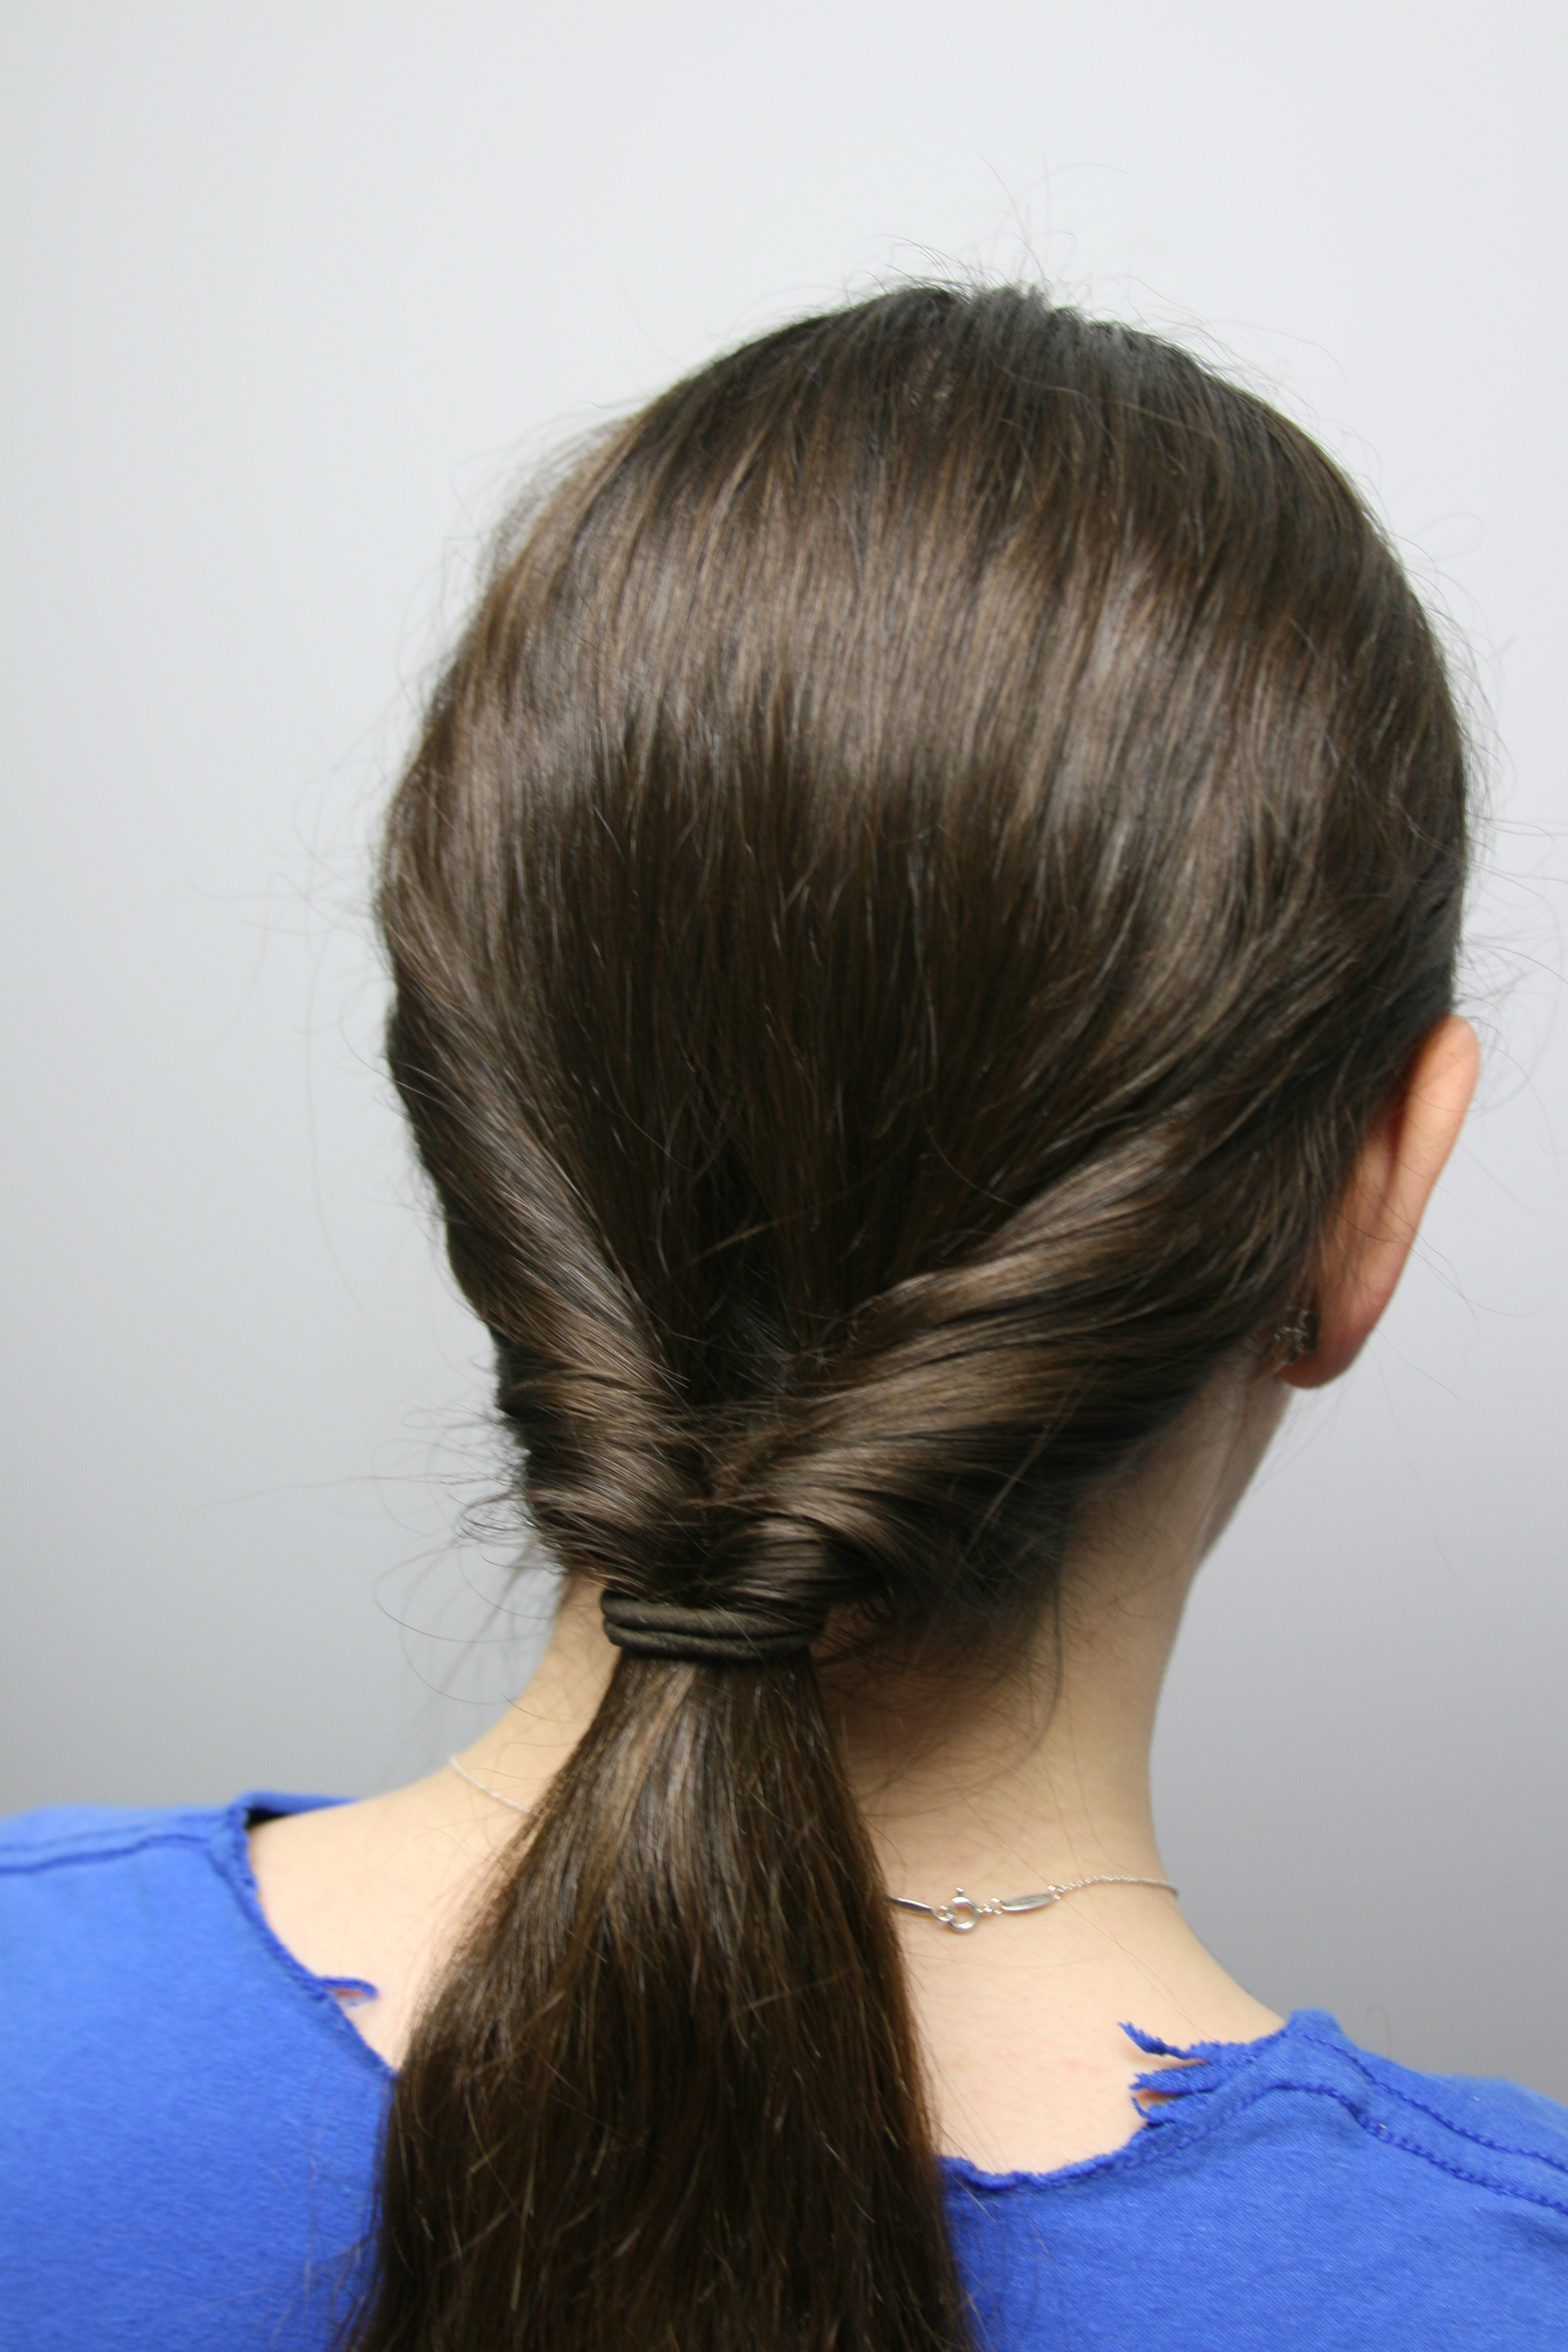 Hairstyle Normal : Normal Hair Style Step By Step Picture Ideas With Hairstyle Ideas For ...